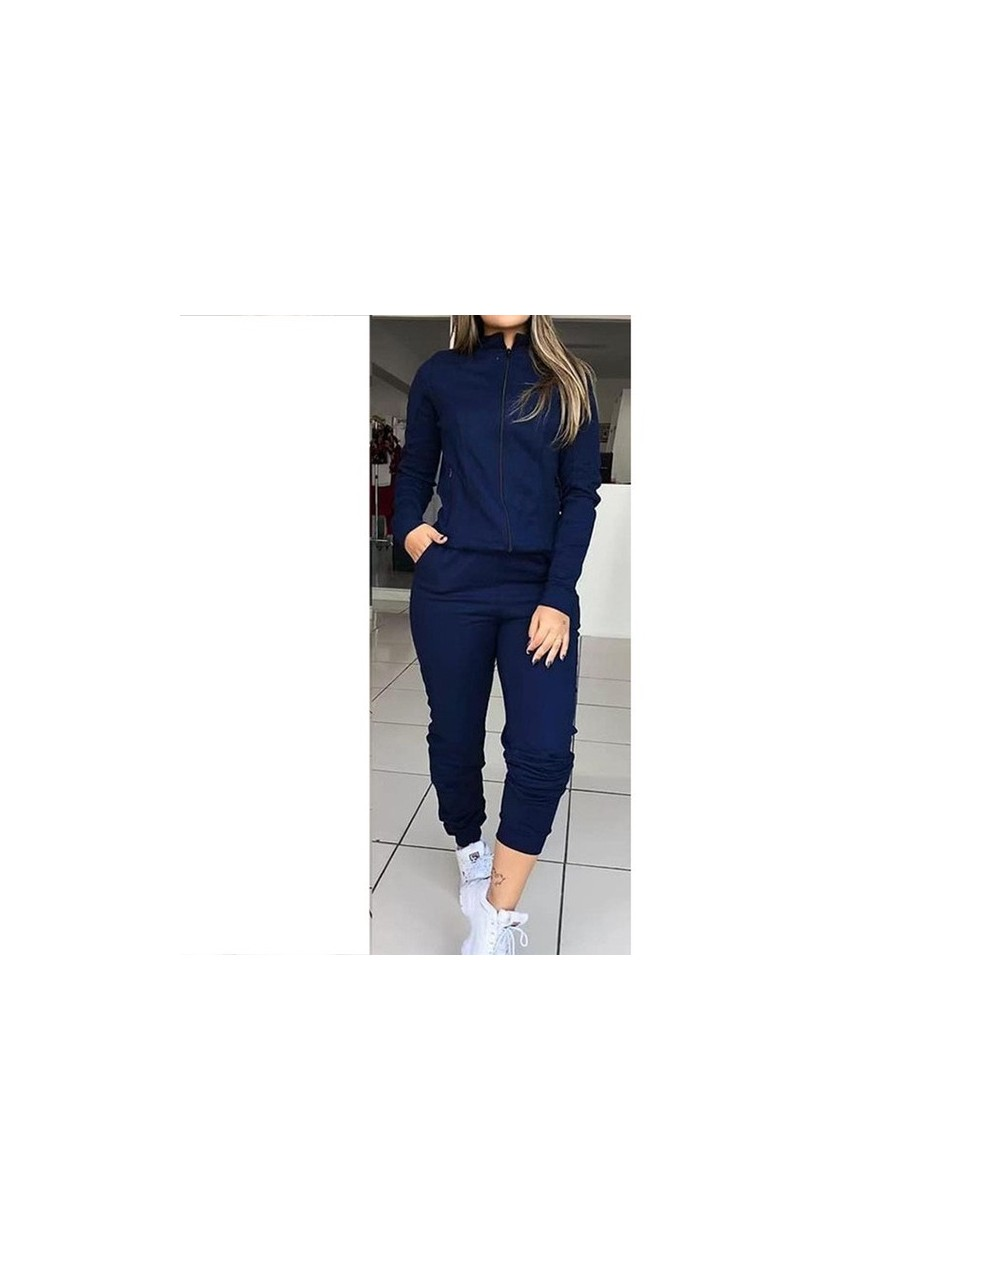 Women's Autumn Solid Color Long Sleeve Outfits Sportswear Two-piece Set Femme Zipper Casual Tops And Pants Tracksuit SJ3615M...